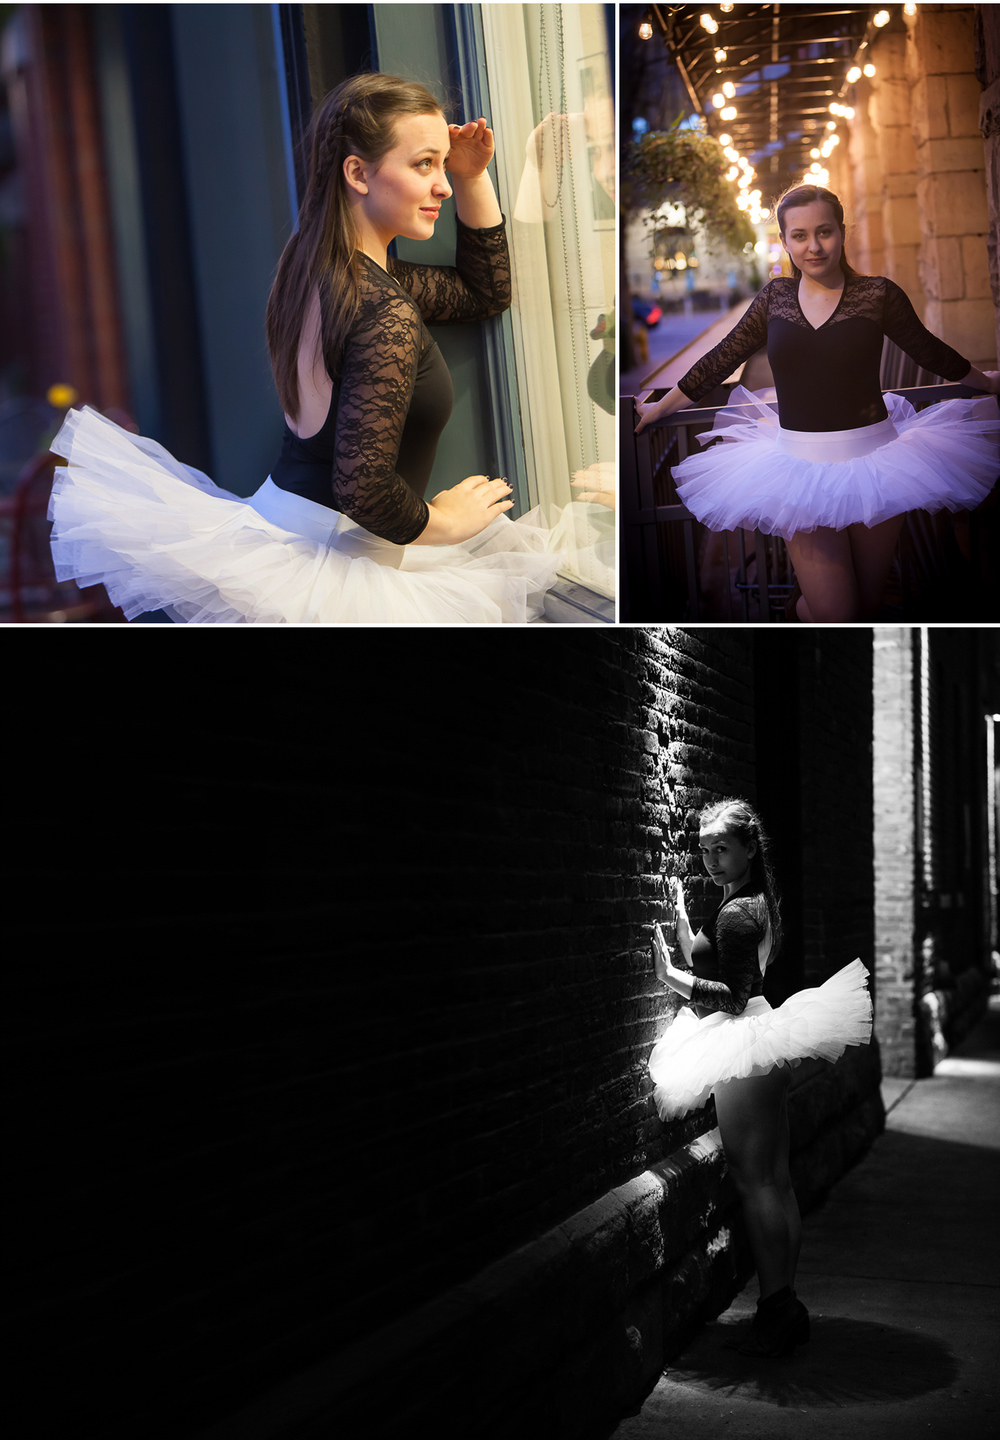 Urban dancer portraits with ballerina tutu at twilight with Denver photographer Jennifer Koskinen, Merritt Portrait Studio.